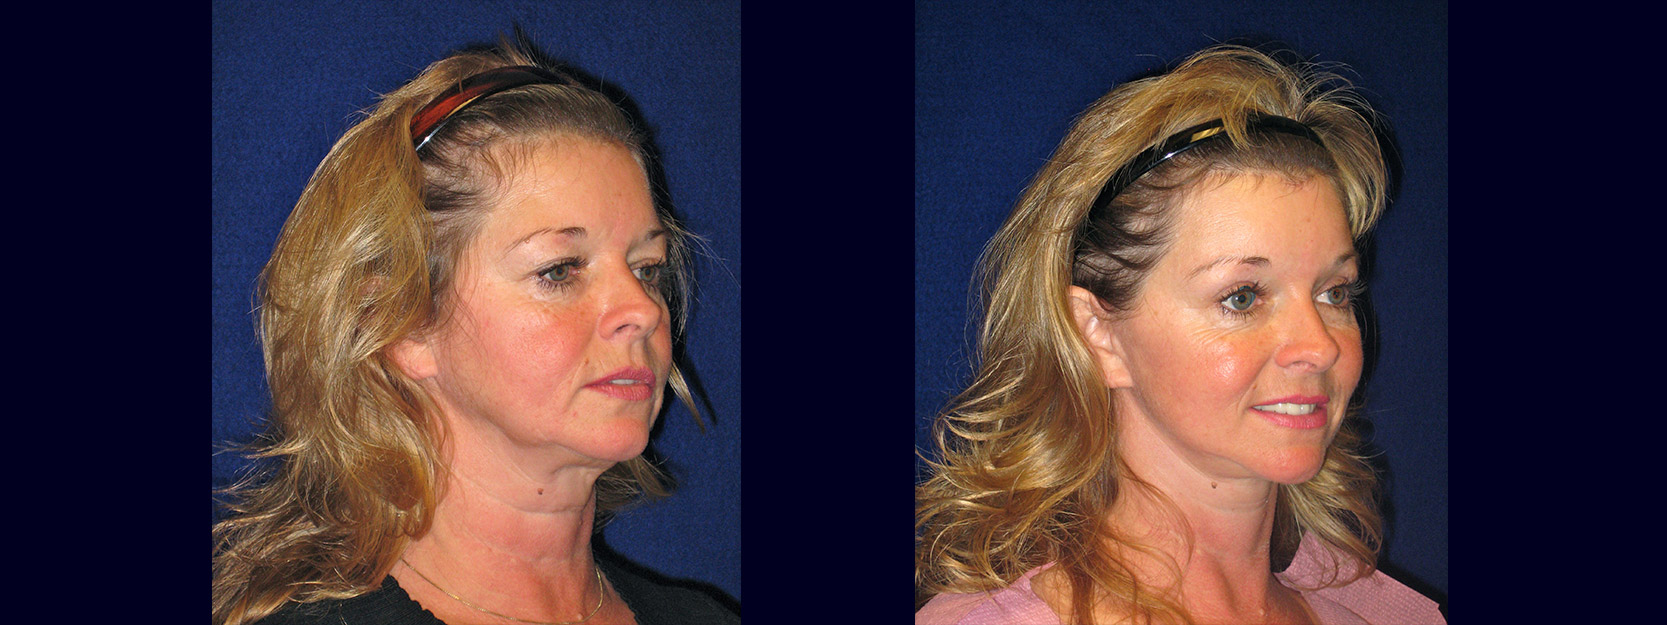 Right 3/4 View - Facelift with Upper and Lower Eyelid Surgery and Browlift